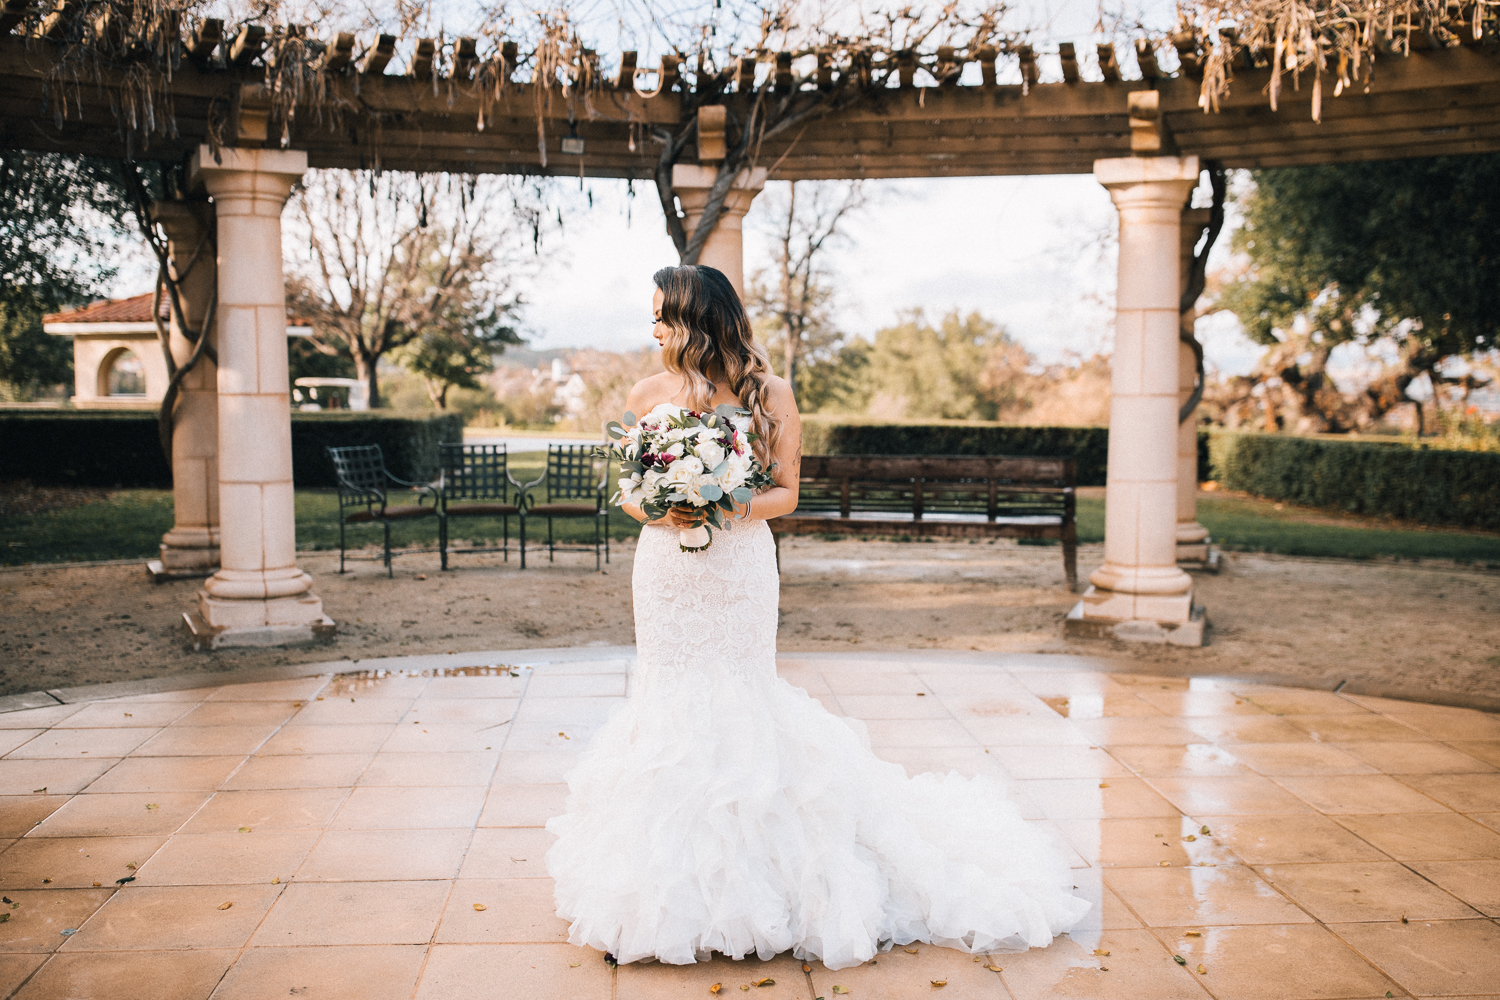 2019_01_ 202019.01.20 Santiago Wedding Blog Photos Edited For Web 0030.jpg